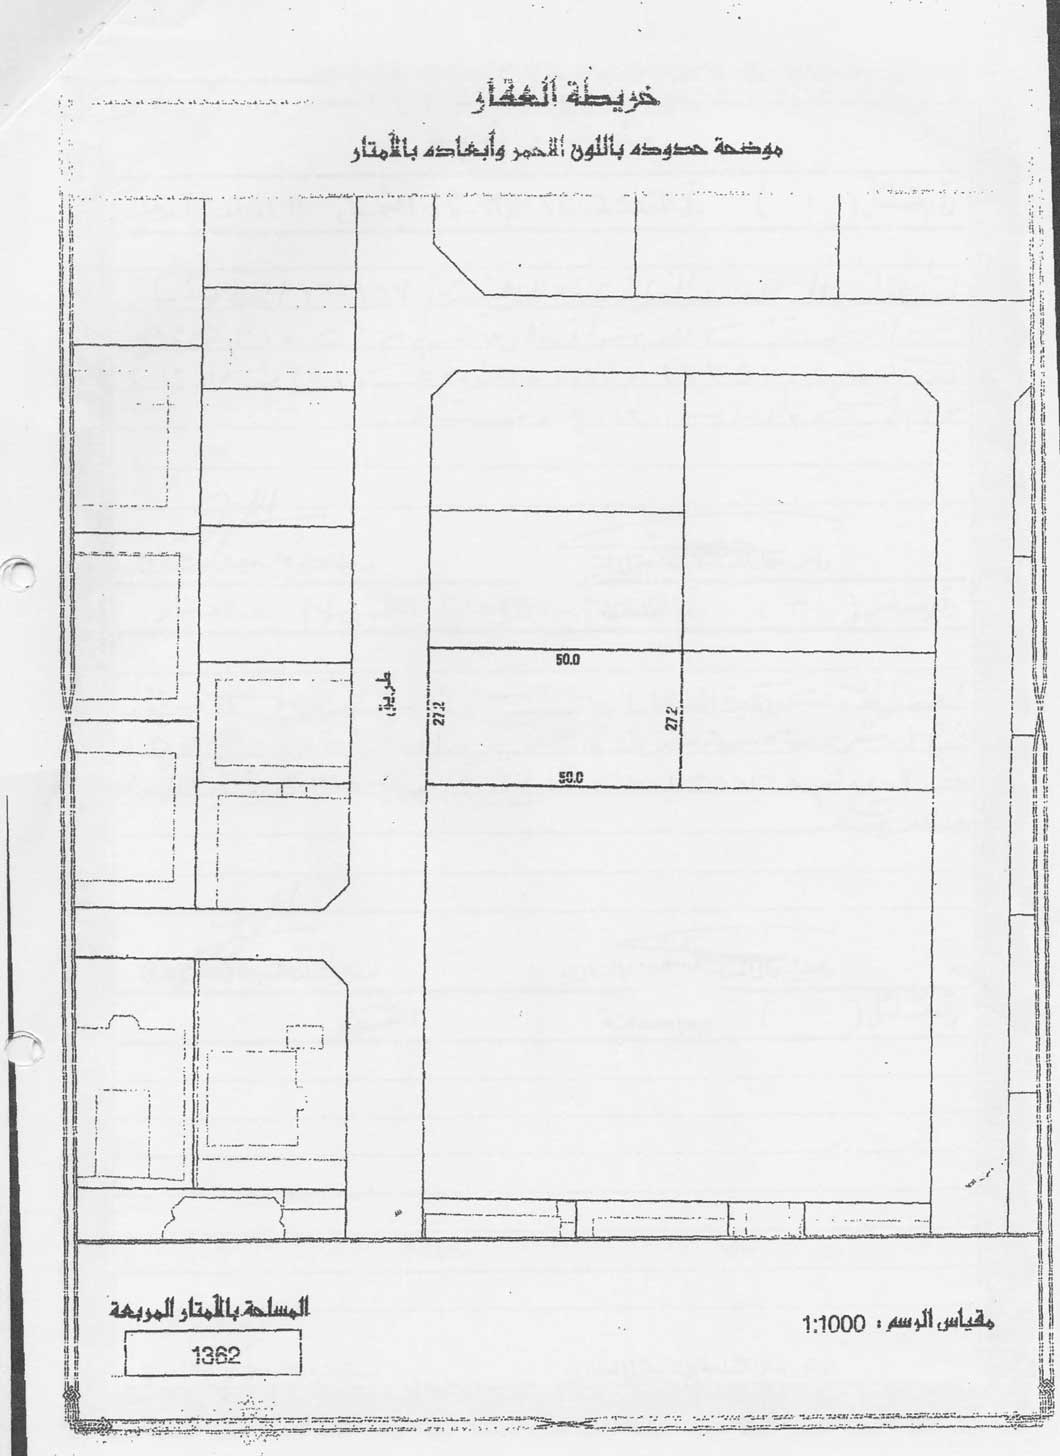 For sale residential investment land in Juffair. Ref: JUF-MH-037